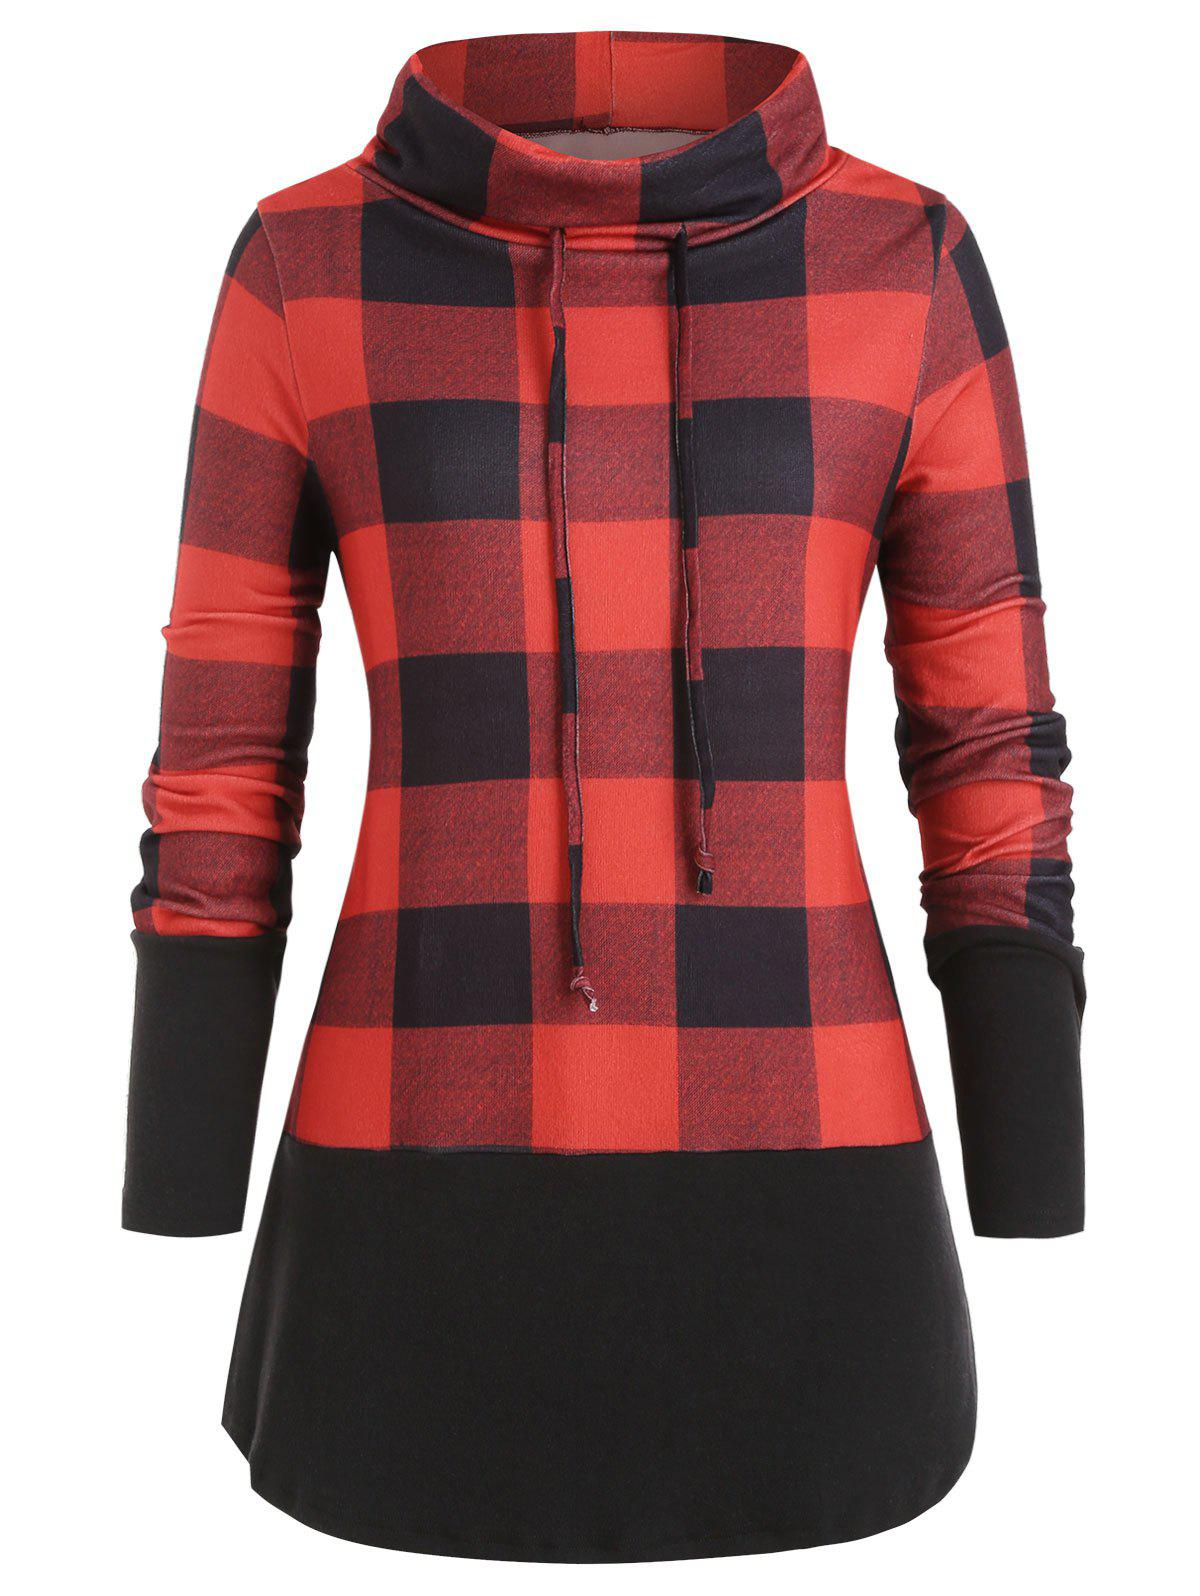 Cowl Neck Brushed Plaid Plus Size Sweatshirt - RED M